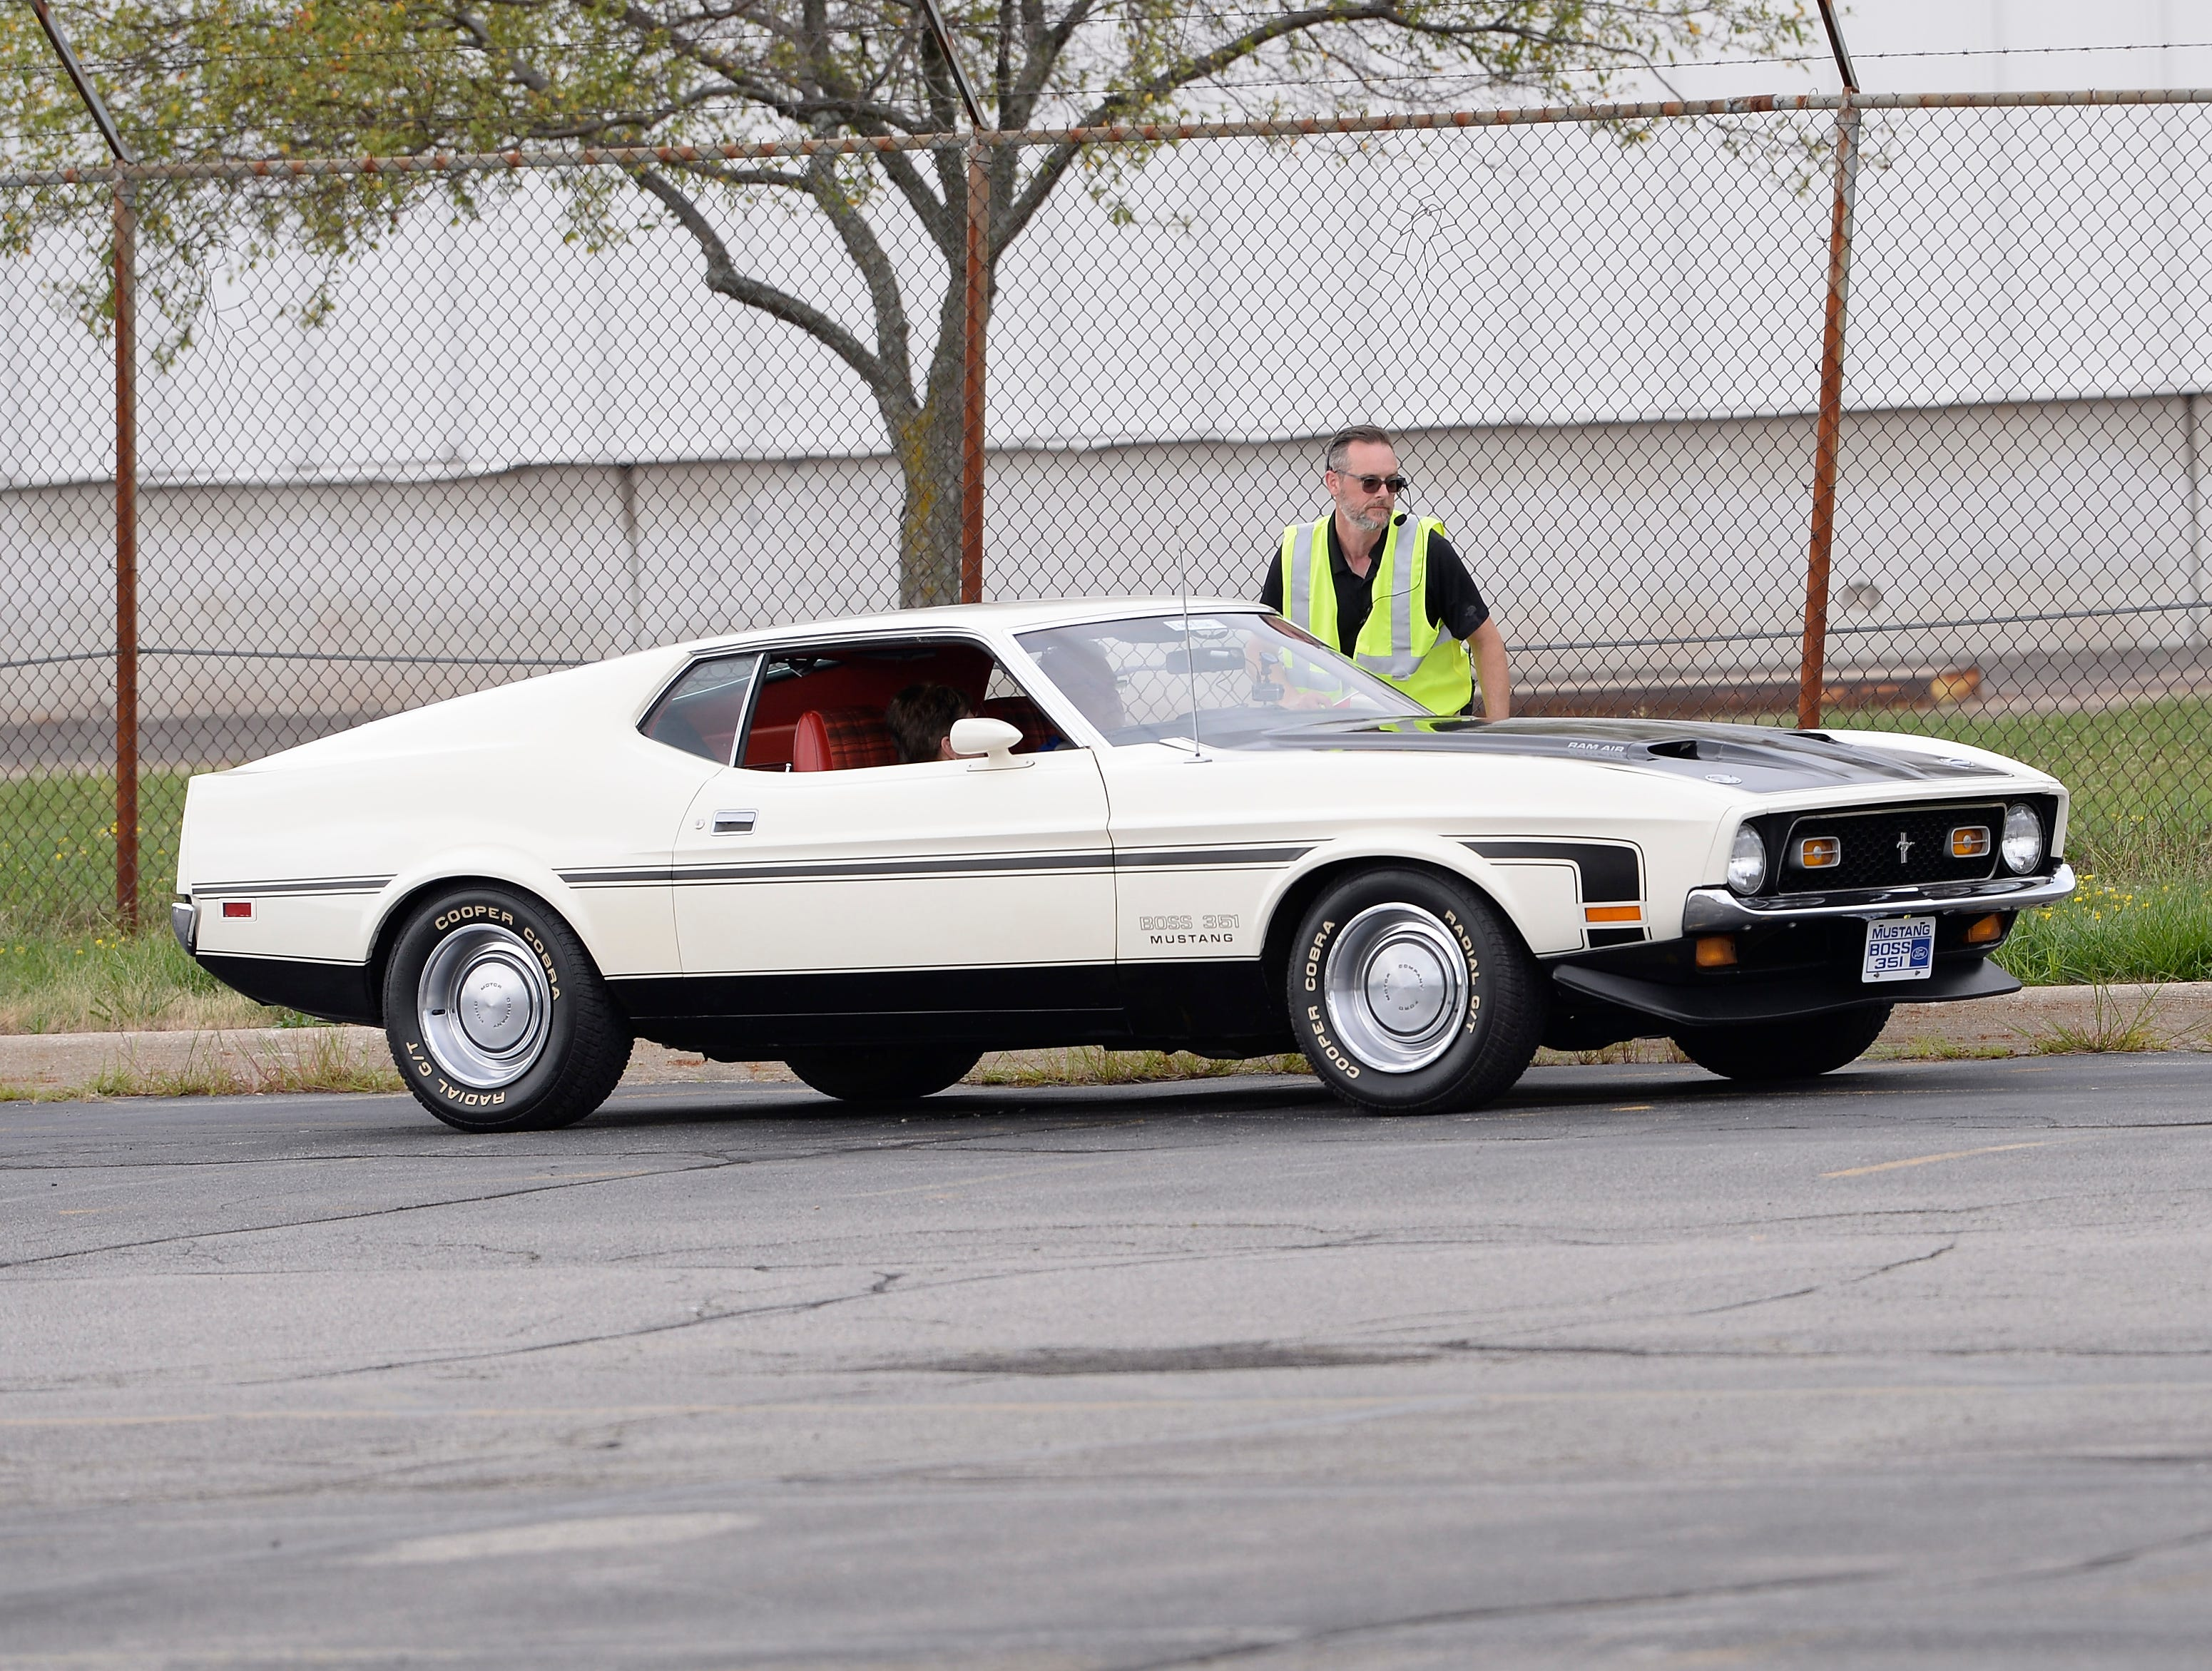 A 1971 Mustang Boss 351 waits for the start of the parade.